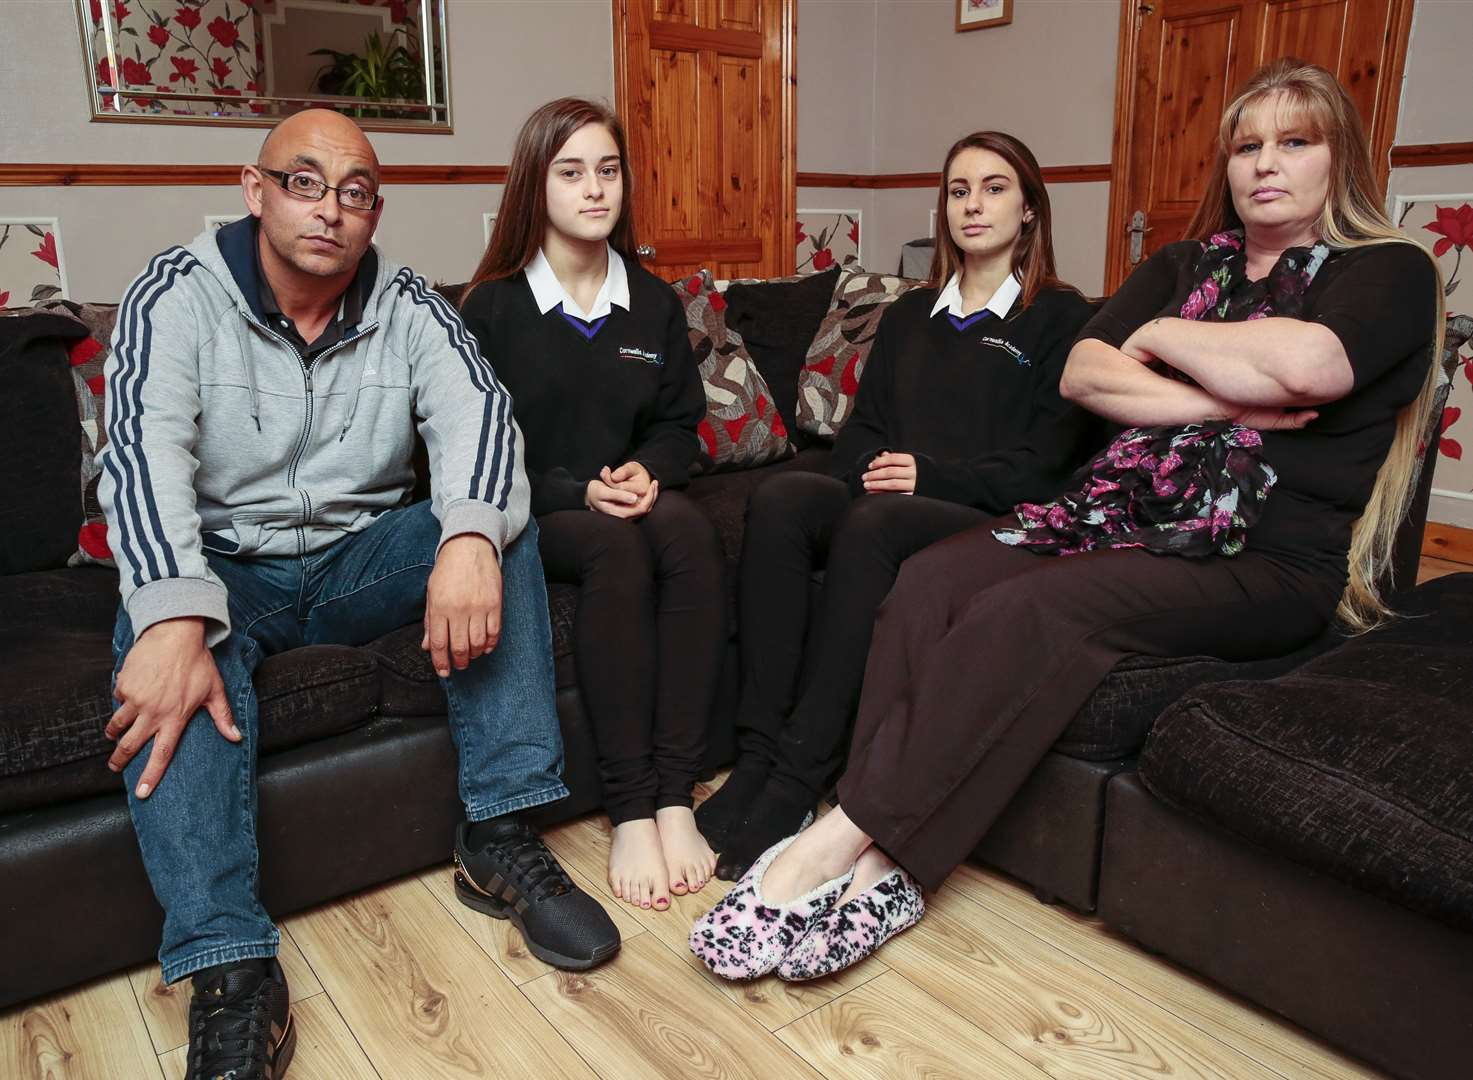 Skinny trousers spark school uniform row